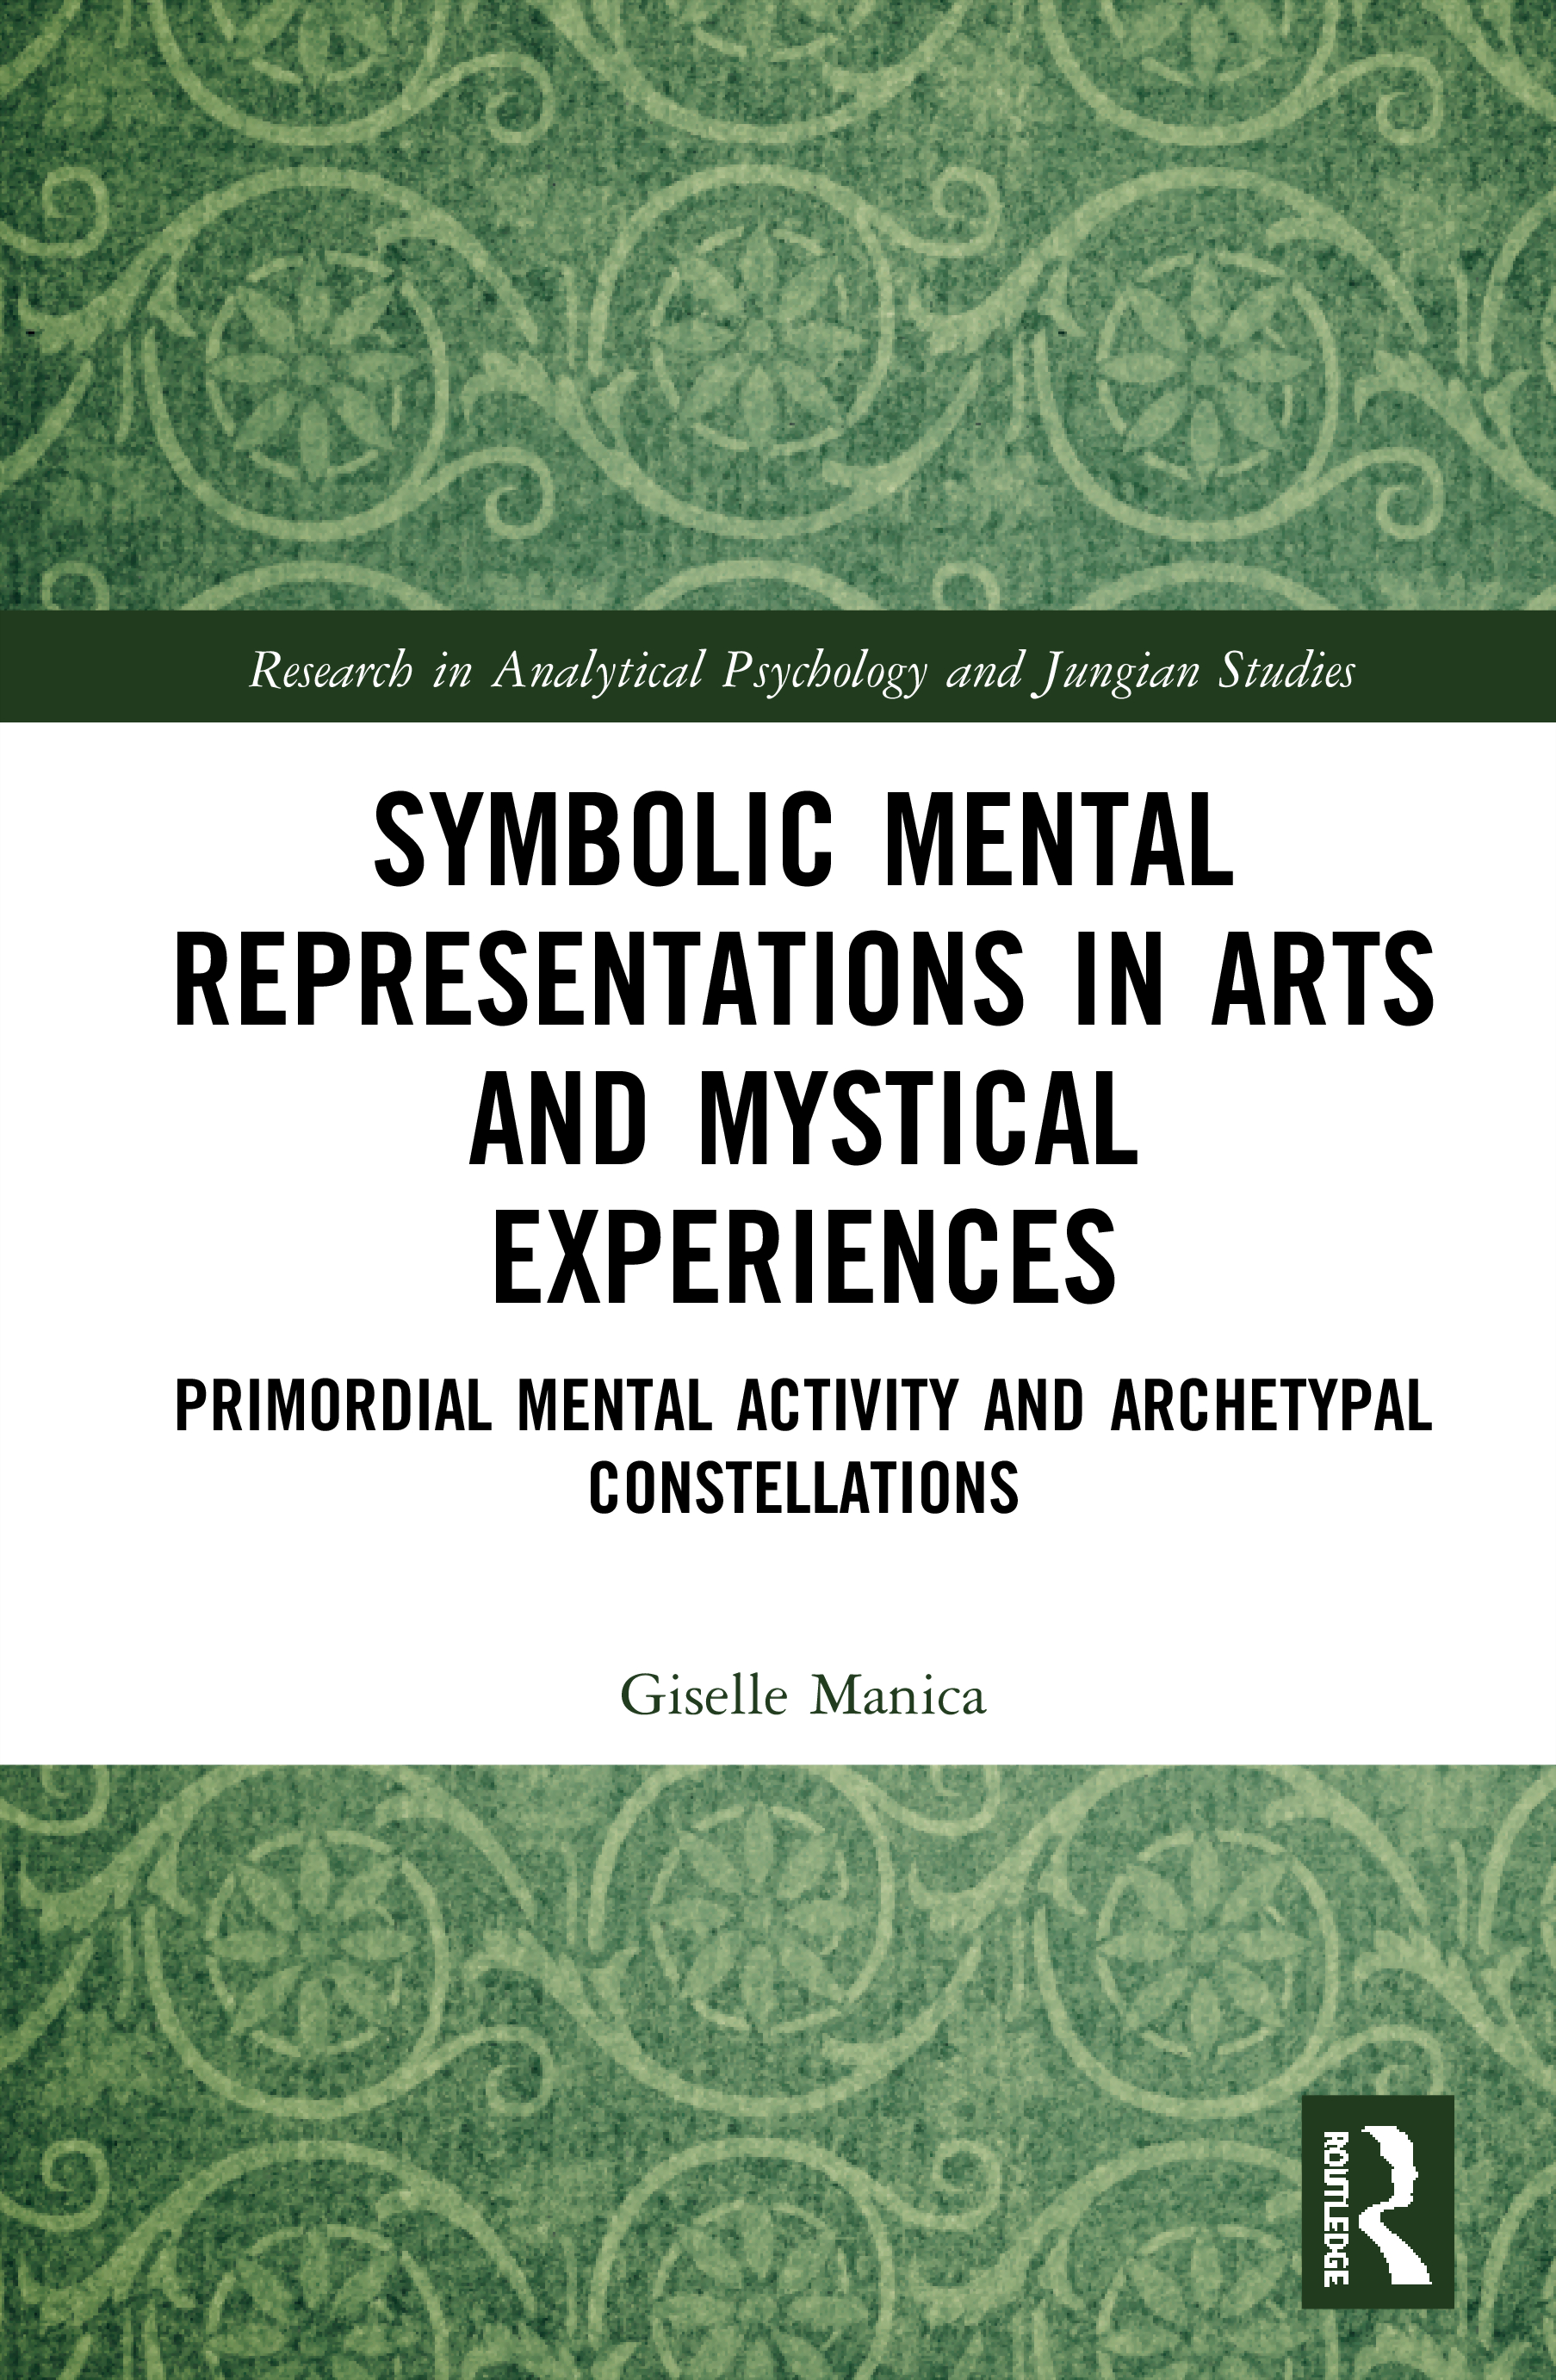 Symbolic Mental Representations in Arts and Mystical Experiences: Primordial Mental Activity and Archetypal Constellations, 1st Edition (Hardback) book cover